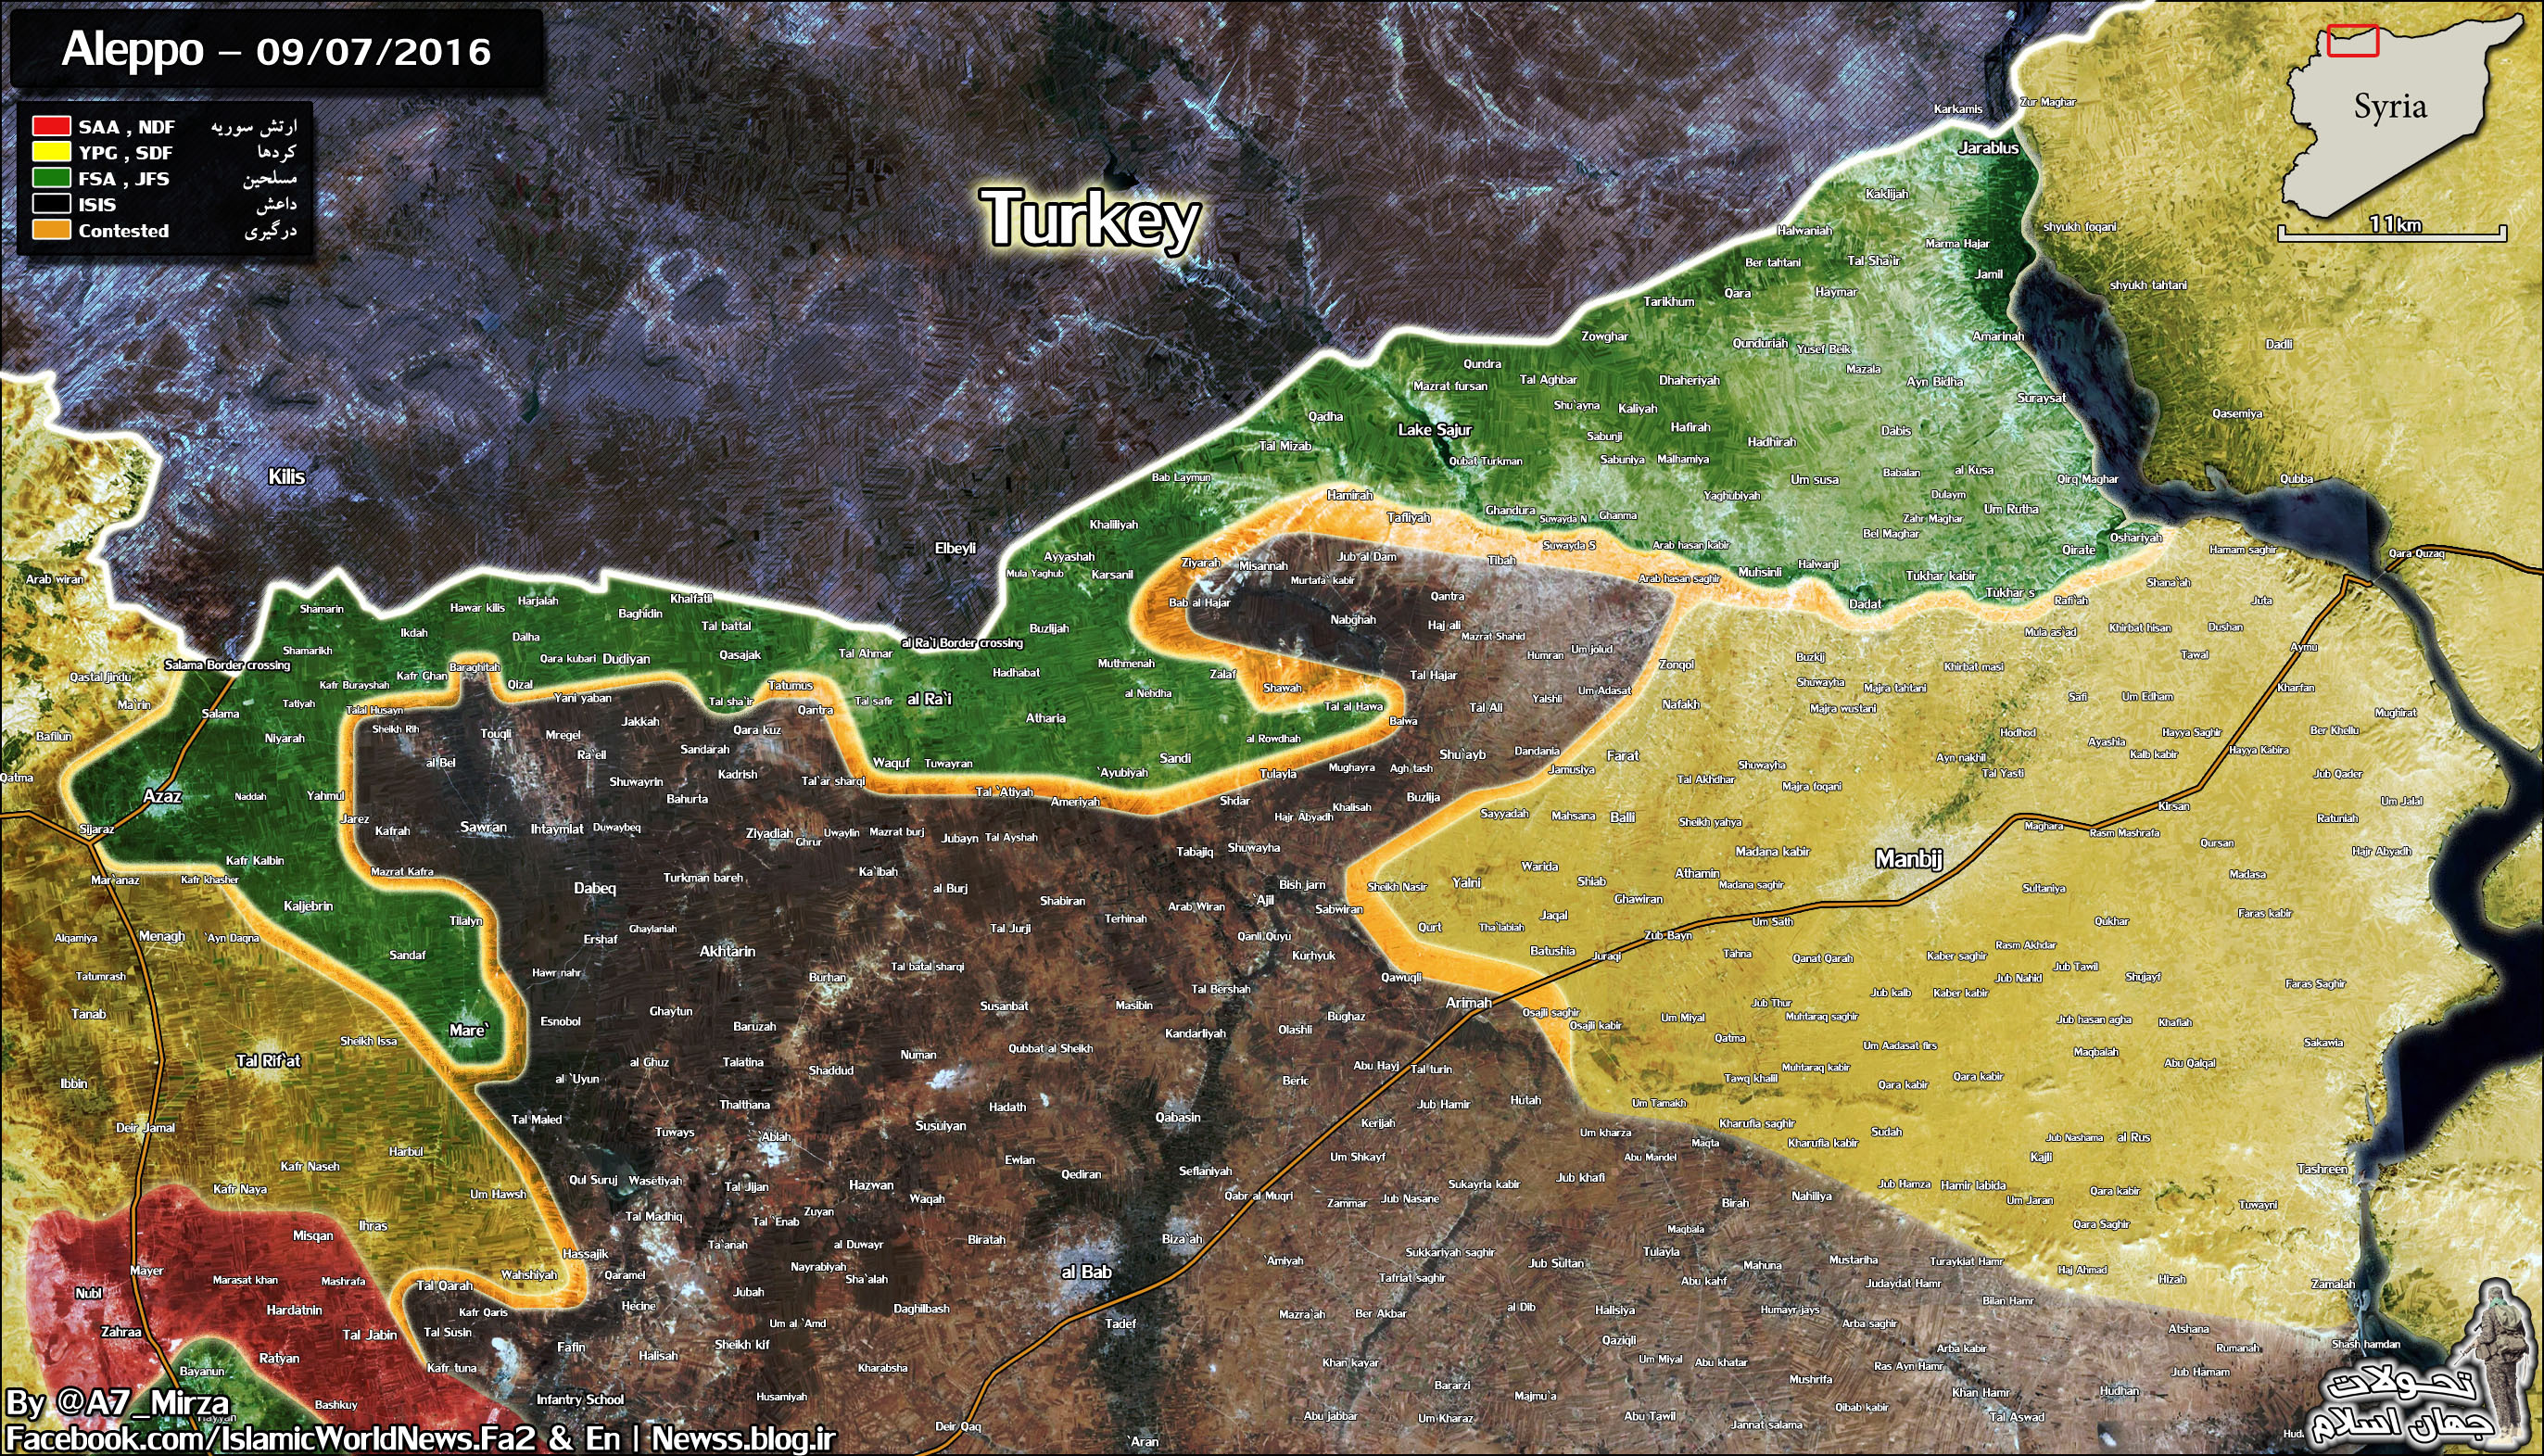 Military Situation in Northern Aleppo, Syria on September 7